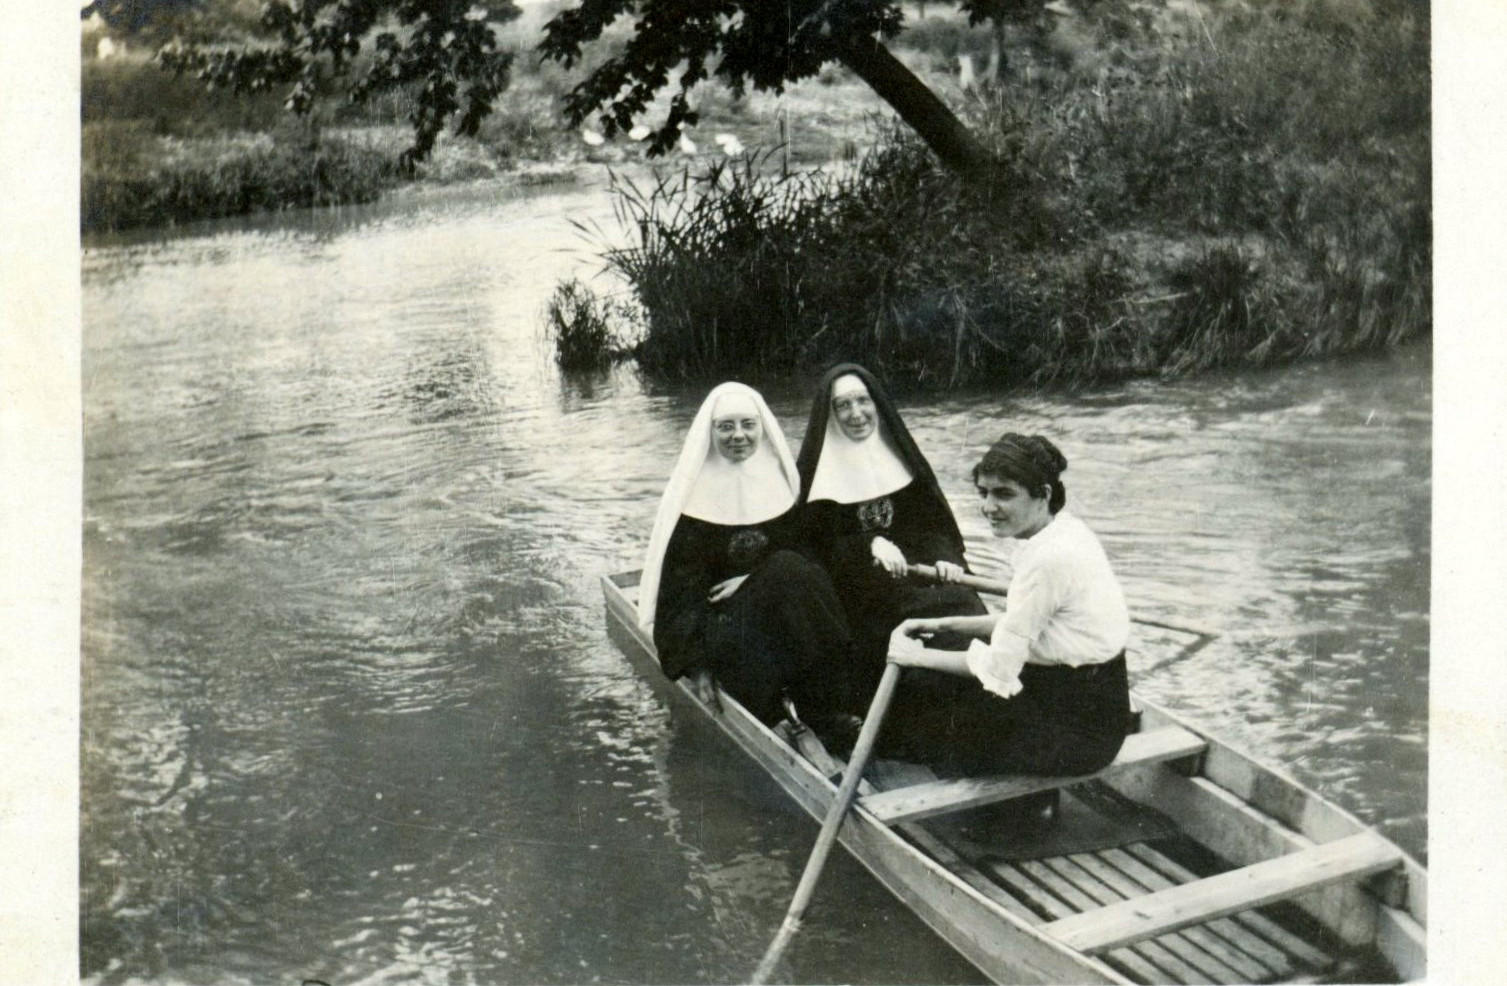 The headwaters of the San Antonio start their journey on the Congregation's property. In 2008, the Sisters set aside 53 acres of congregation land from their original property purchased in 1897 and created the Headwaters Coalition, a ministry dedicated to Earth care and to living in right relationship with God's creation.